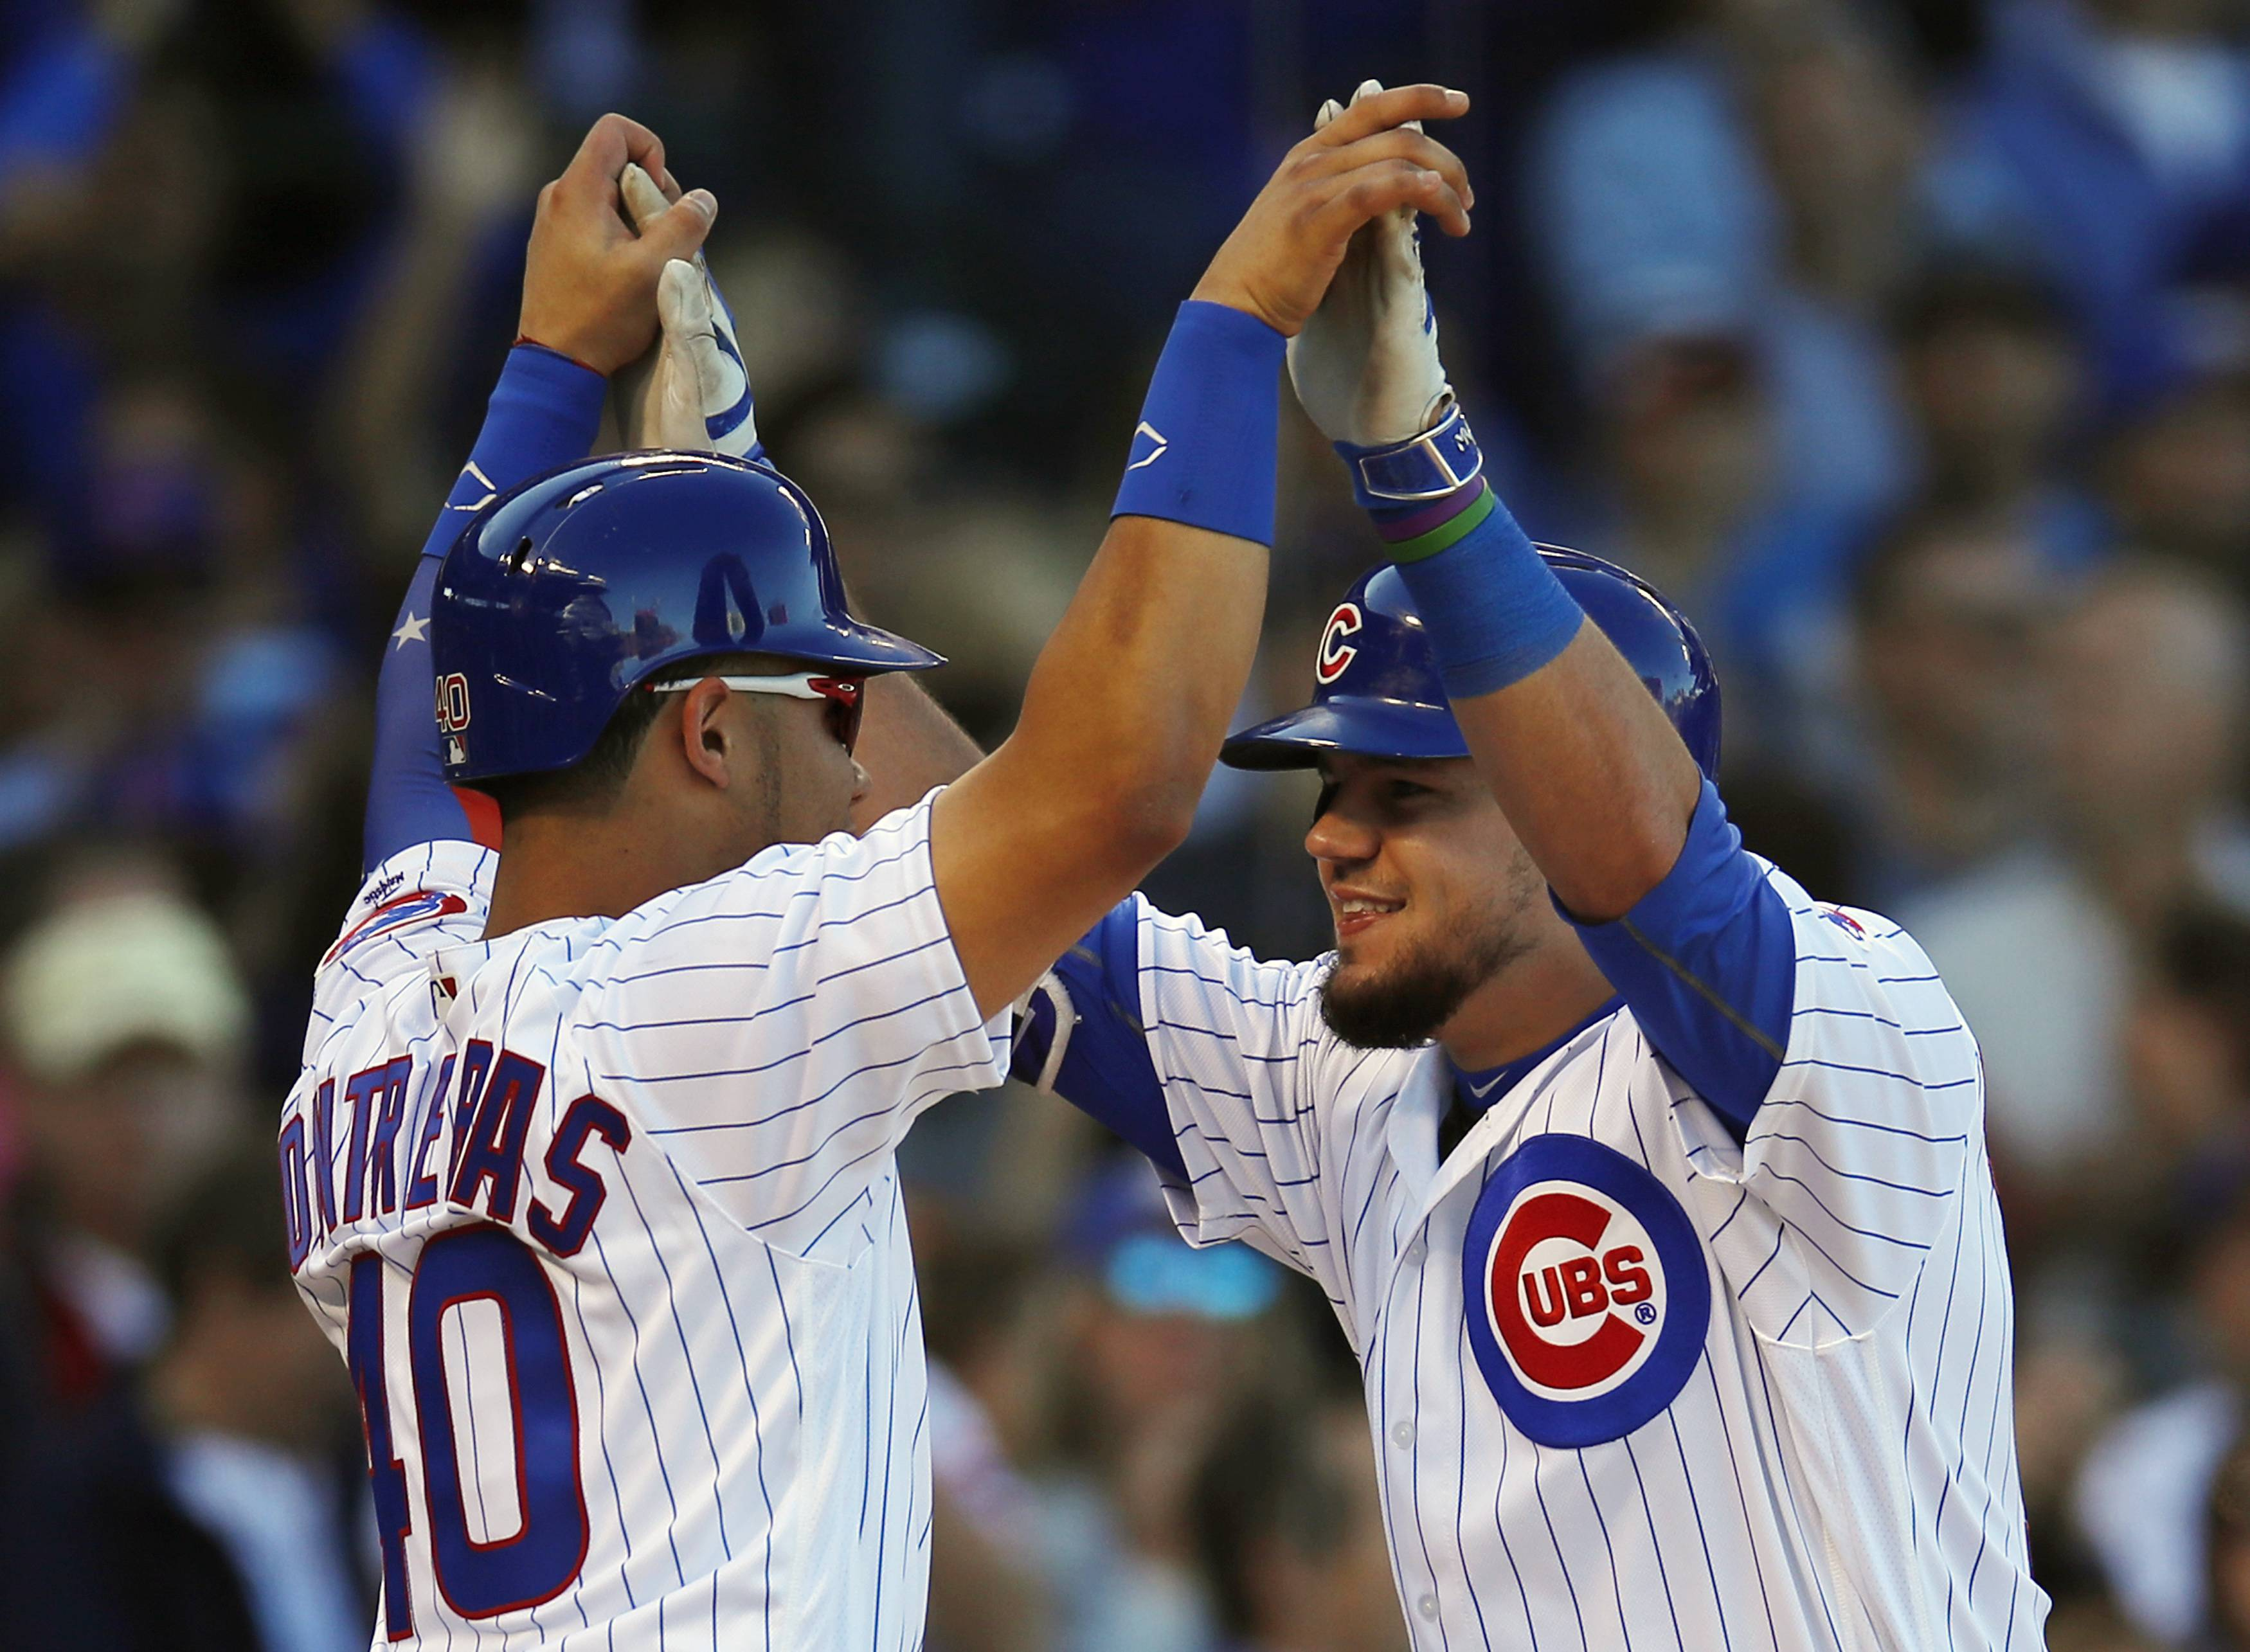 Chicago Cubs' Kyle Schwarber, right, celebrates with teammate Willson Contreras after hitting a two-run home run against the Cincinnati Reds during the second inning Saturday in Chicago.